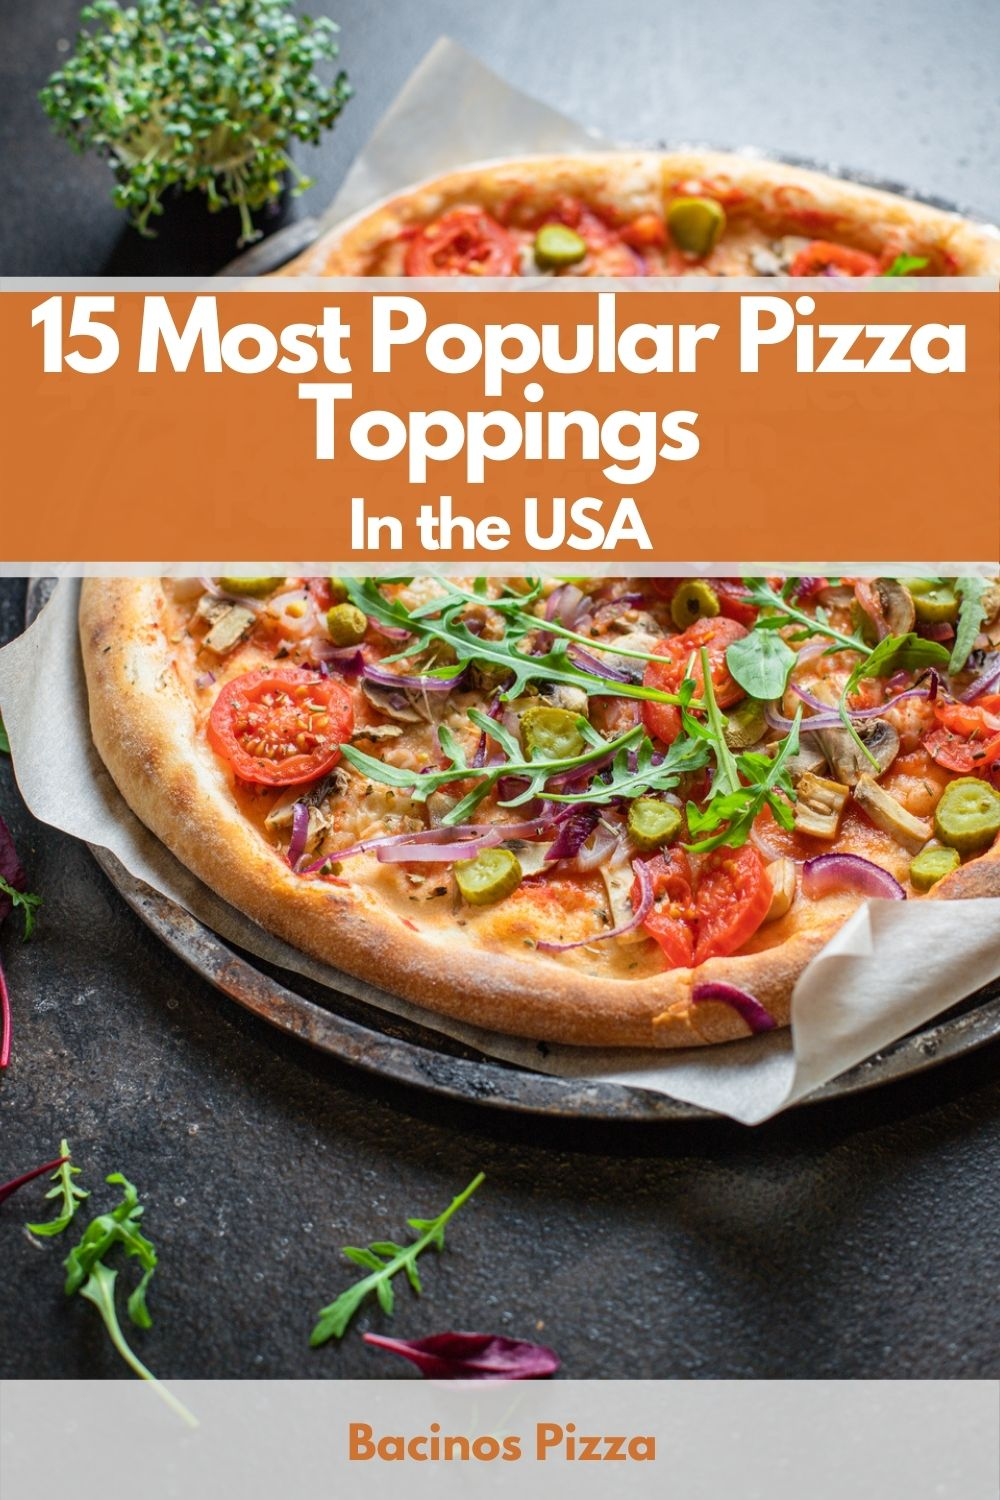 15 Most Popular Pizza Toppings In the USA pin